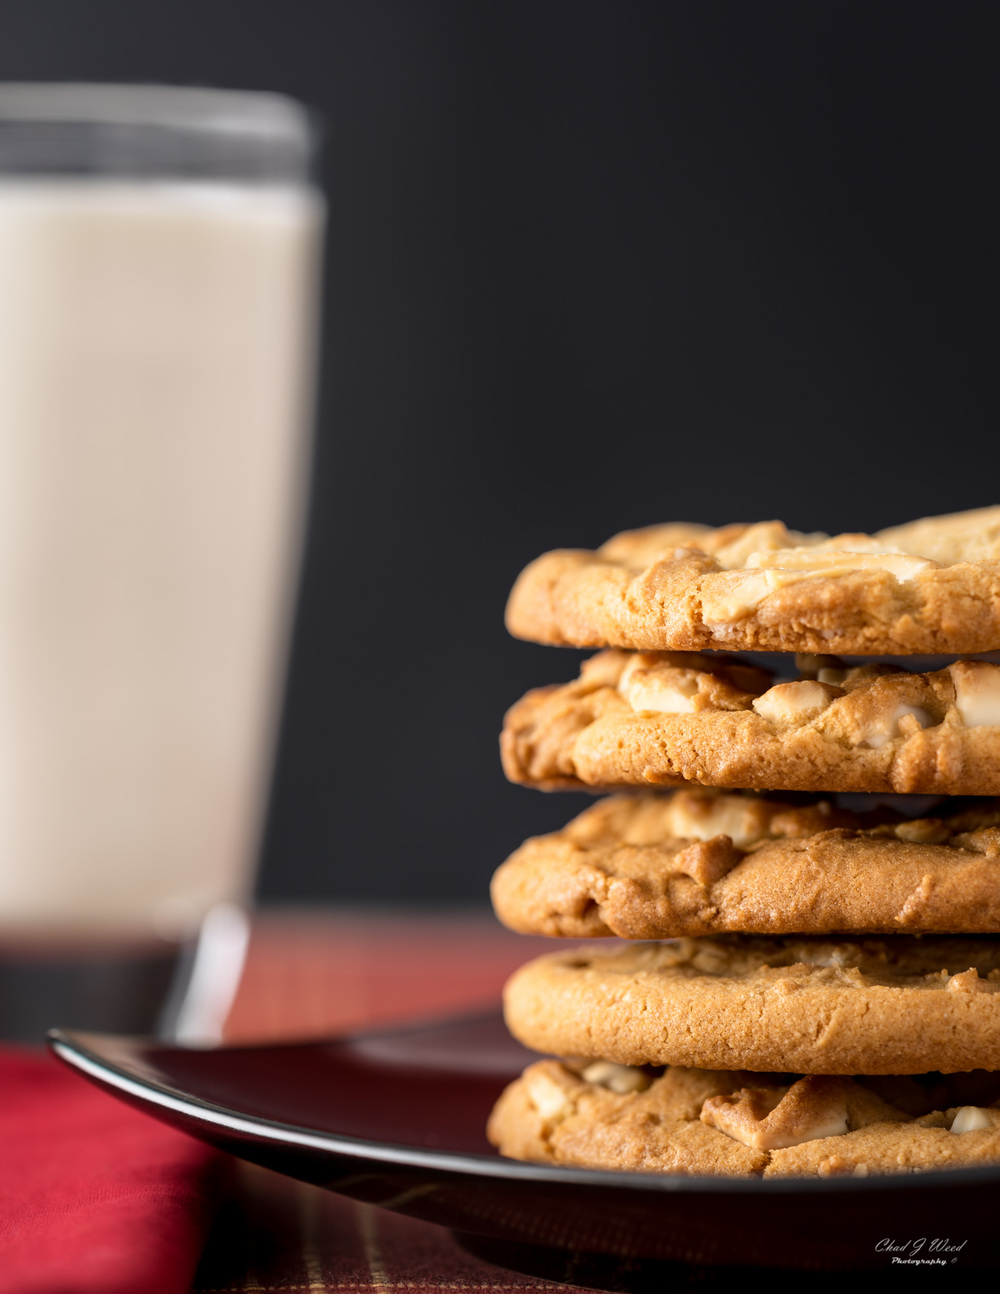 Milk and Cookies by Arizona Commercial Food Photographer Chad J Weed